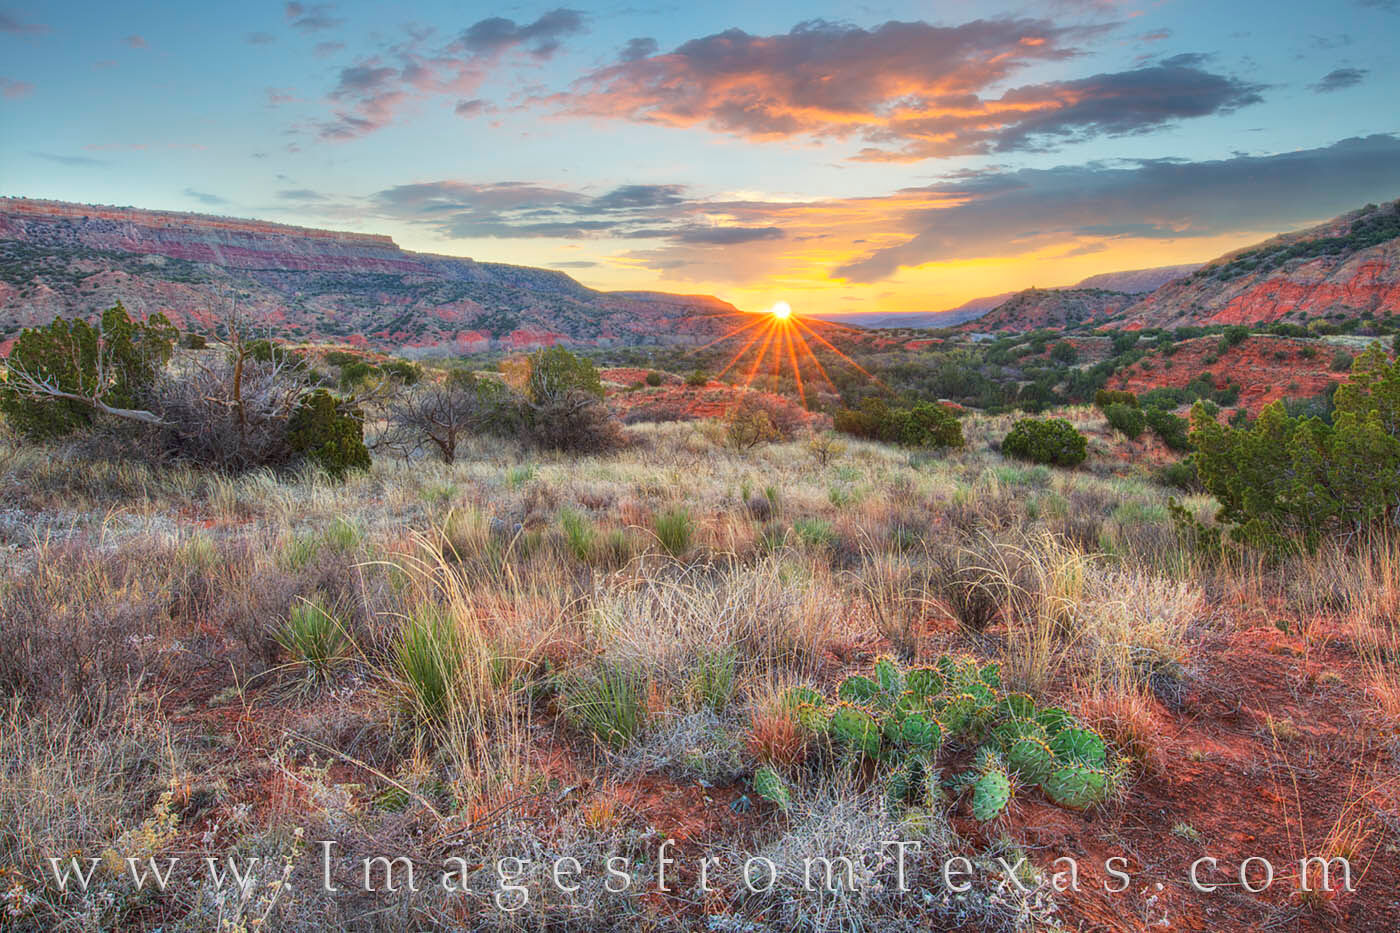 palo duro canyon,texas state park,texas panhandle,texas sunrise,palo duro images,palo duro prints,texas landscapes, photo